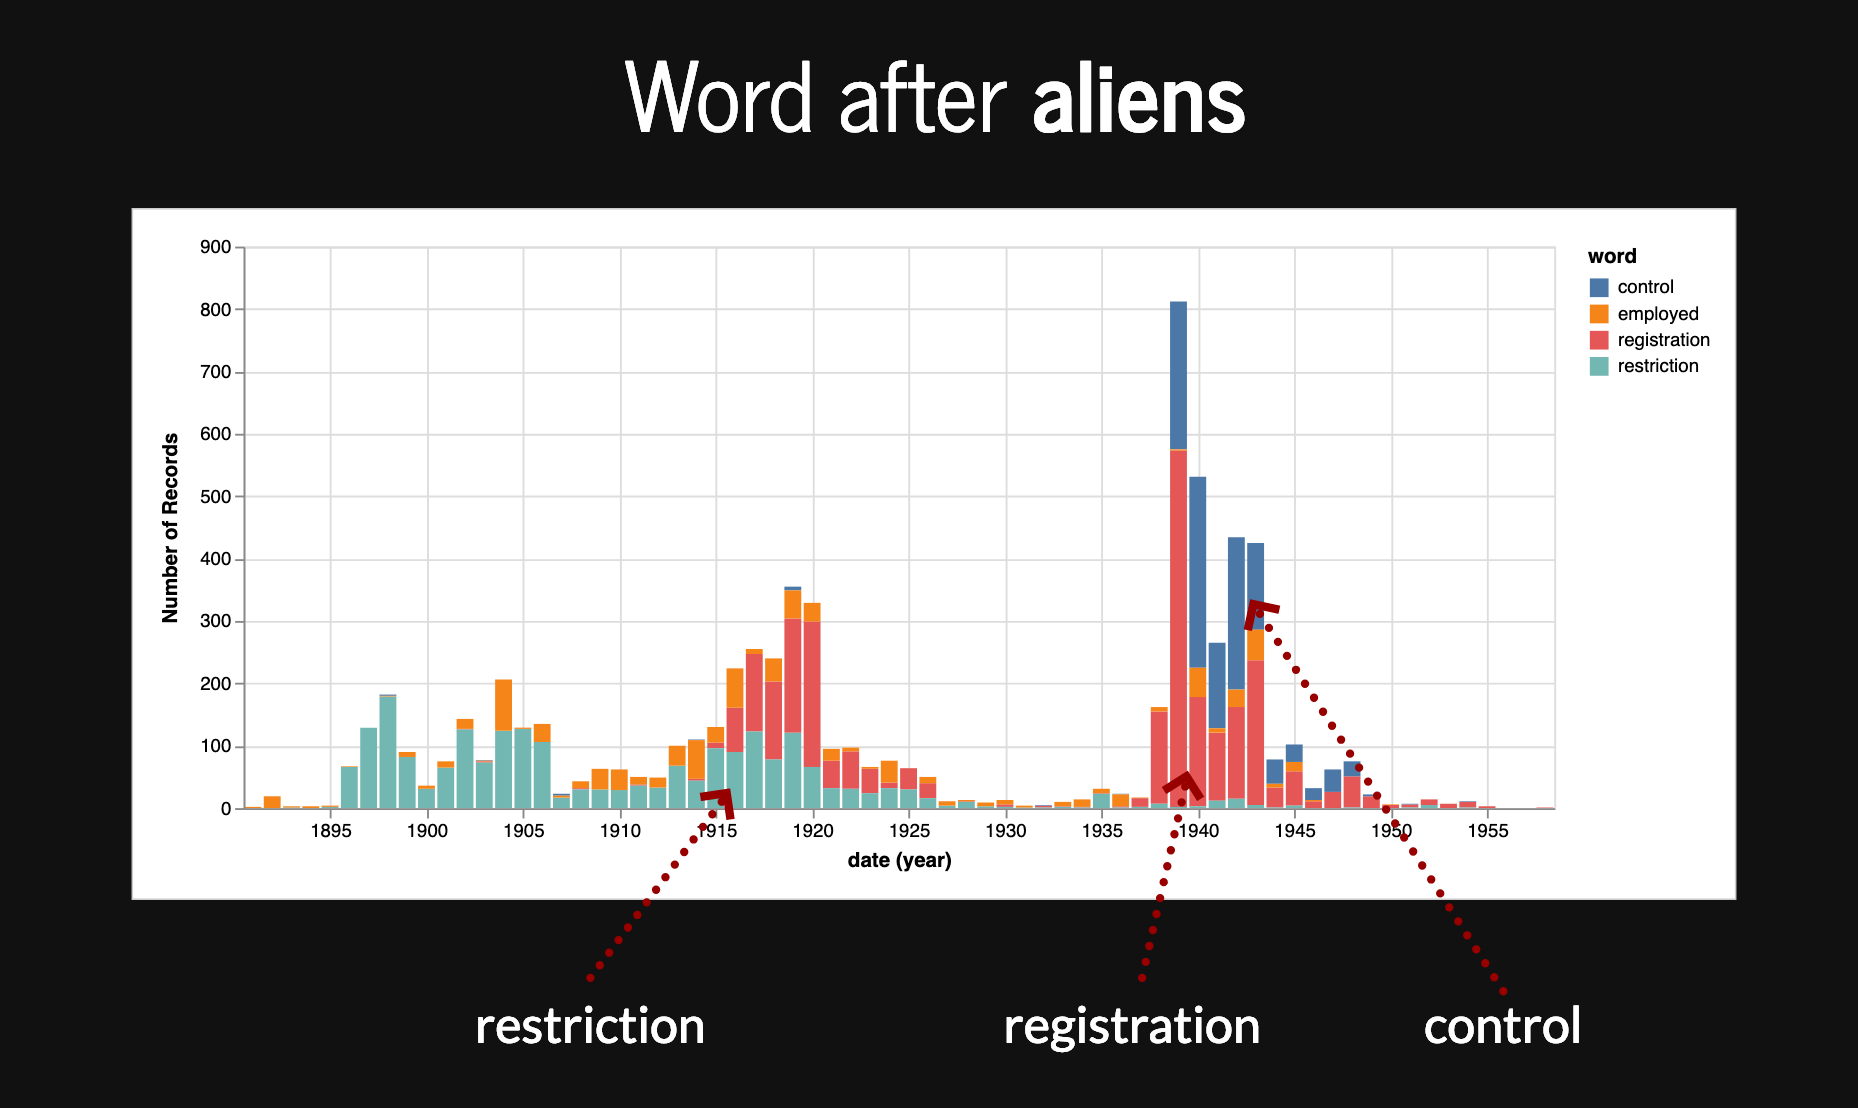 Words after aliens over time